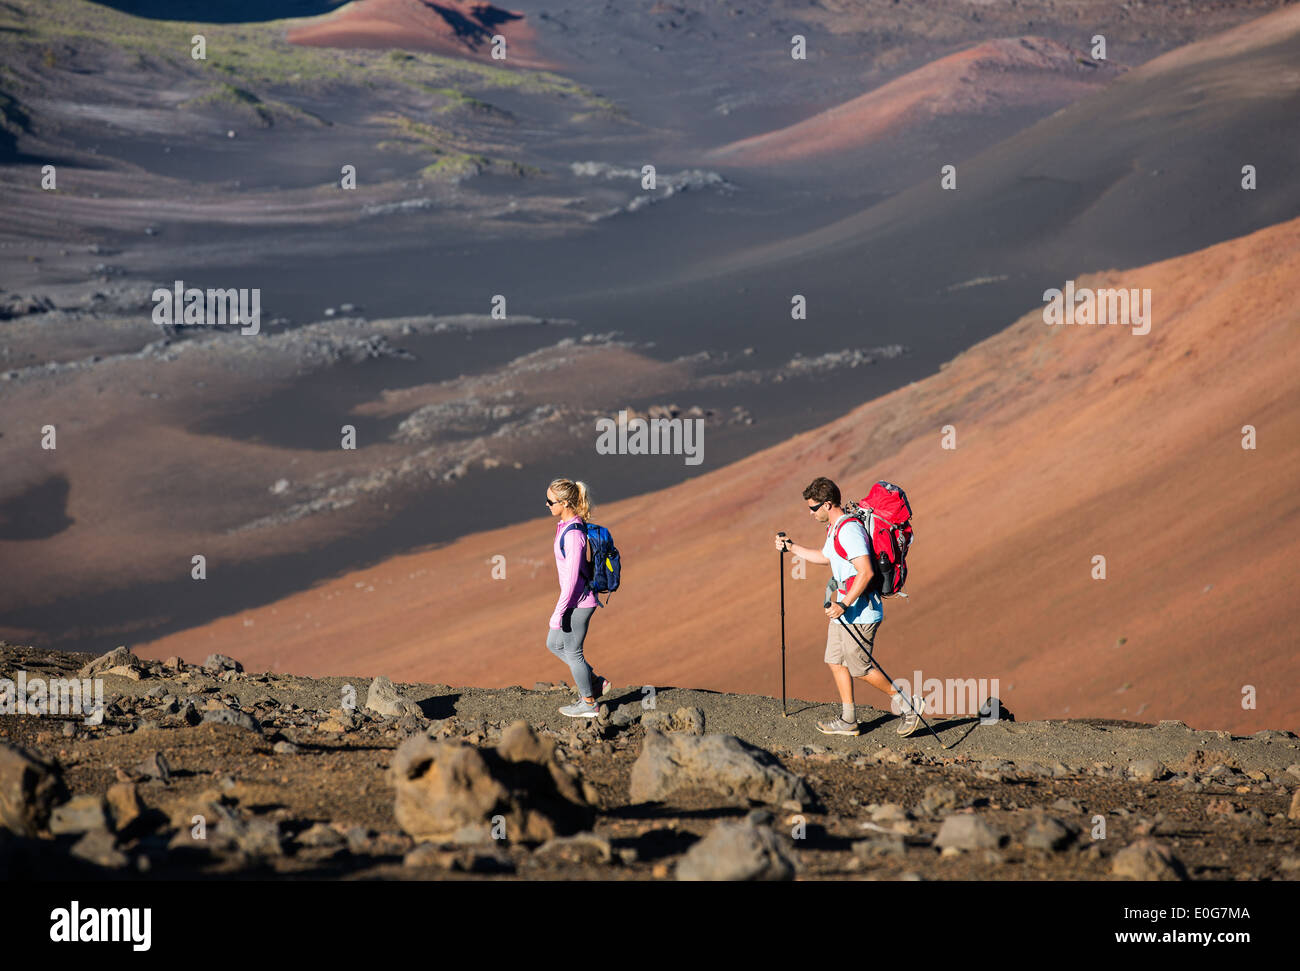 5eb2bb25caad12 Man and woman hiking on beautiful mountain trail. Trekking and backpacking  in the mountains. Healthy lifestyle outdoor adventure